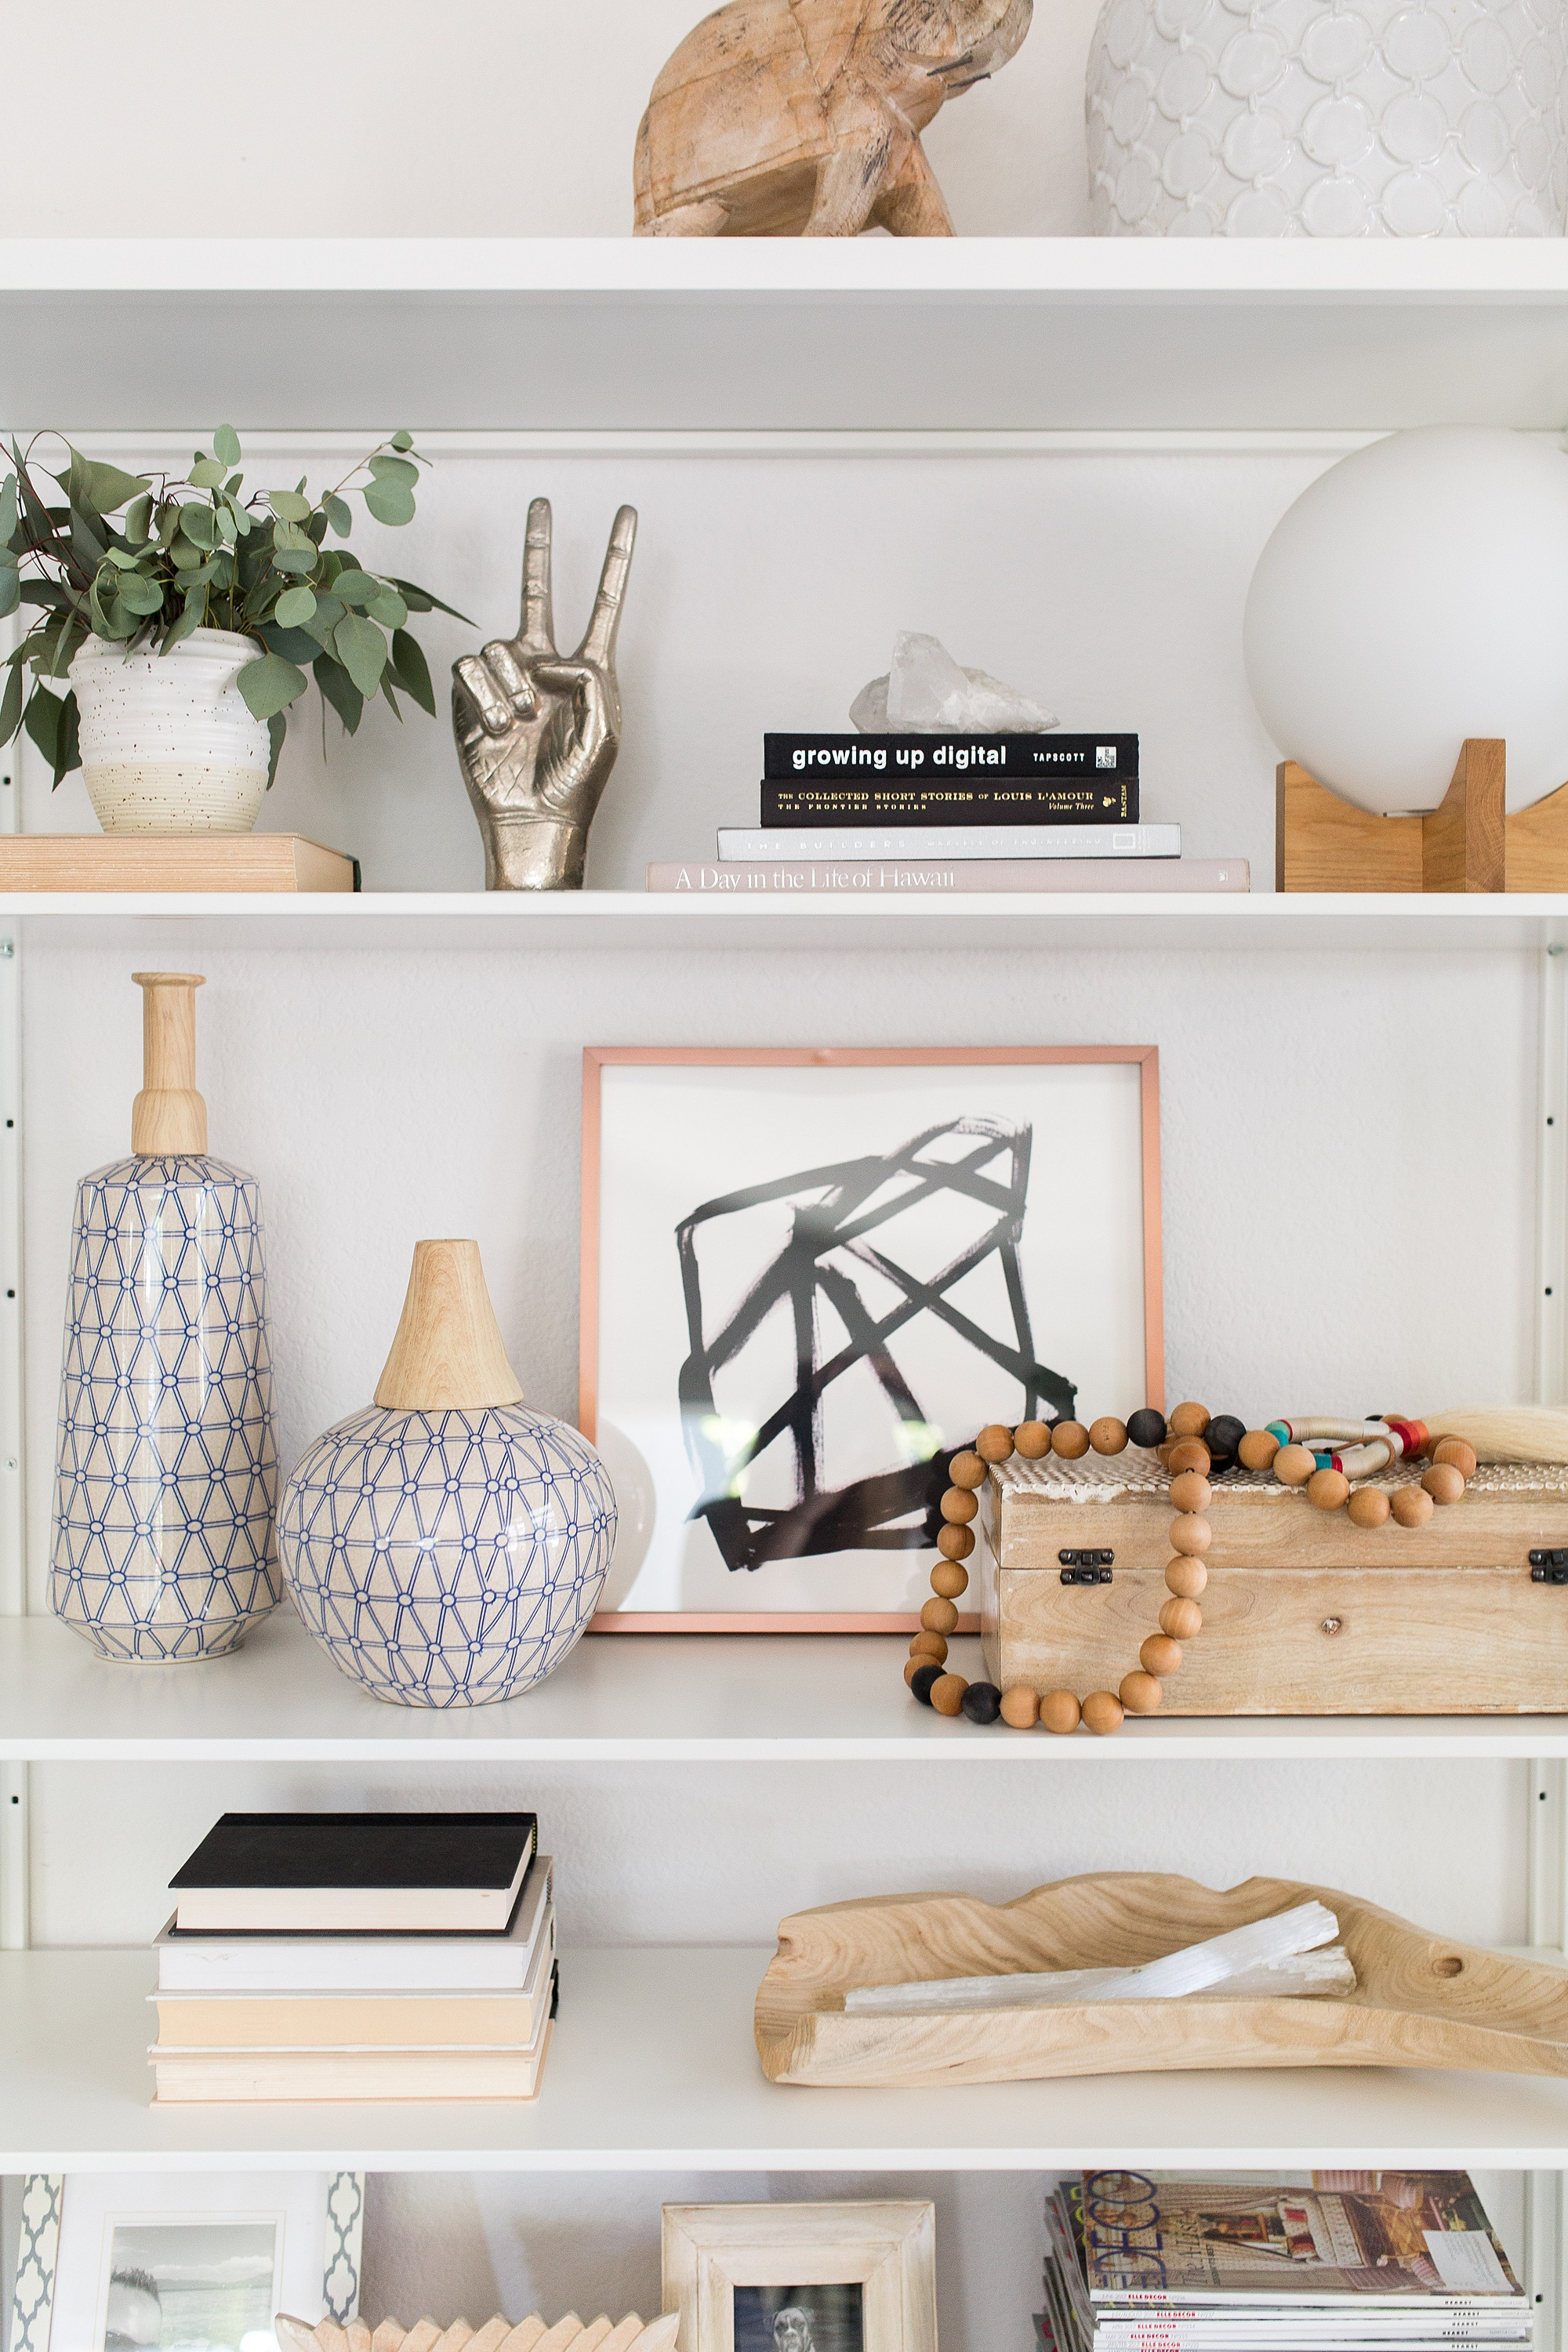 design-shop-interiors-how-to-shelfie-2